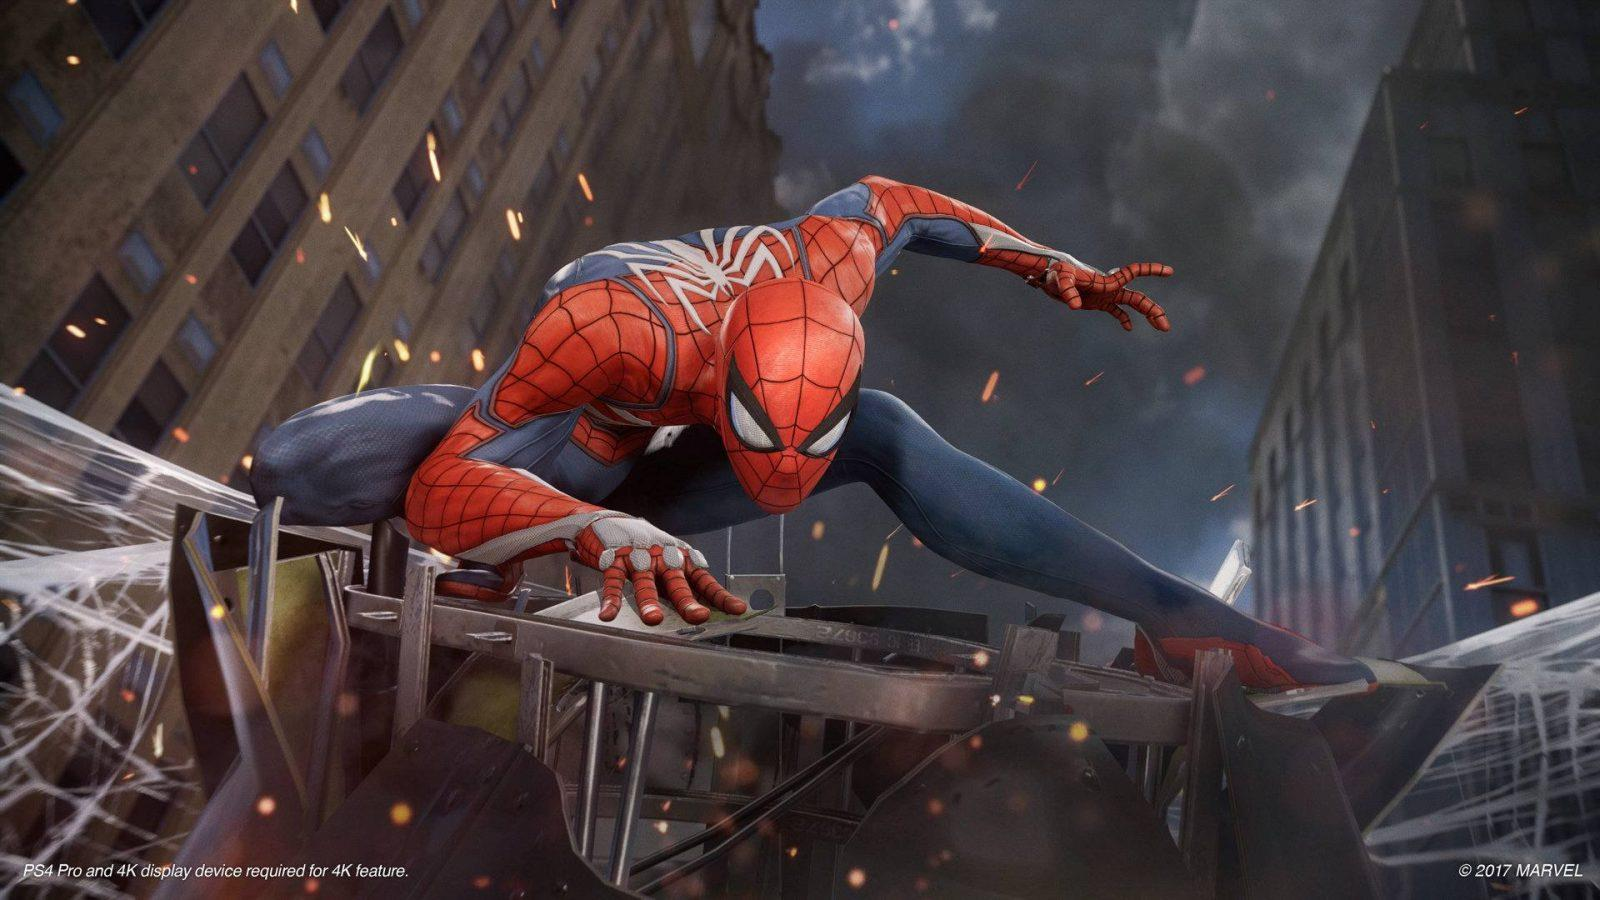 2018's Most Anticipated Games, marvels spider man screen 02 ps4 us 12jun17 1064515 1600x900%, uncategorised, lifestyle%